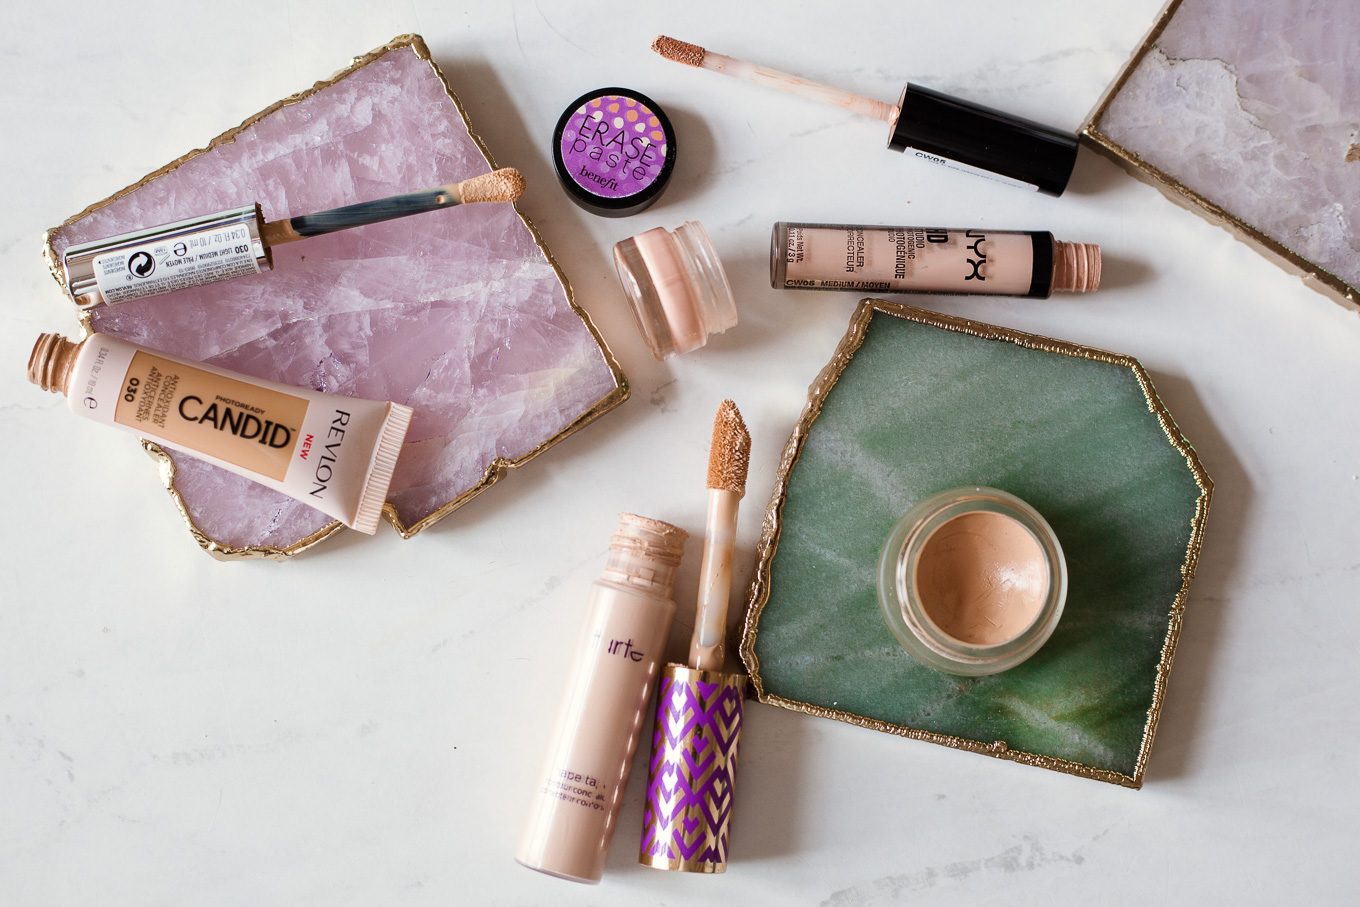 Tired Eyes? The Best Under Eye Concealers I Swear By by popular Chicago beauty blog, Glass of Glam: image of Revlon candid concealer, Tarte concealer, Benefit erase paste, rms beauty concealer, and NYX concealer.